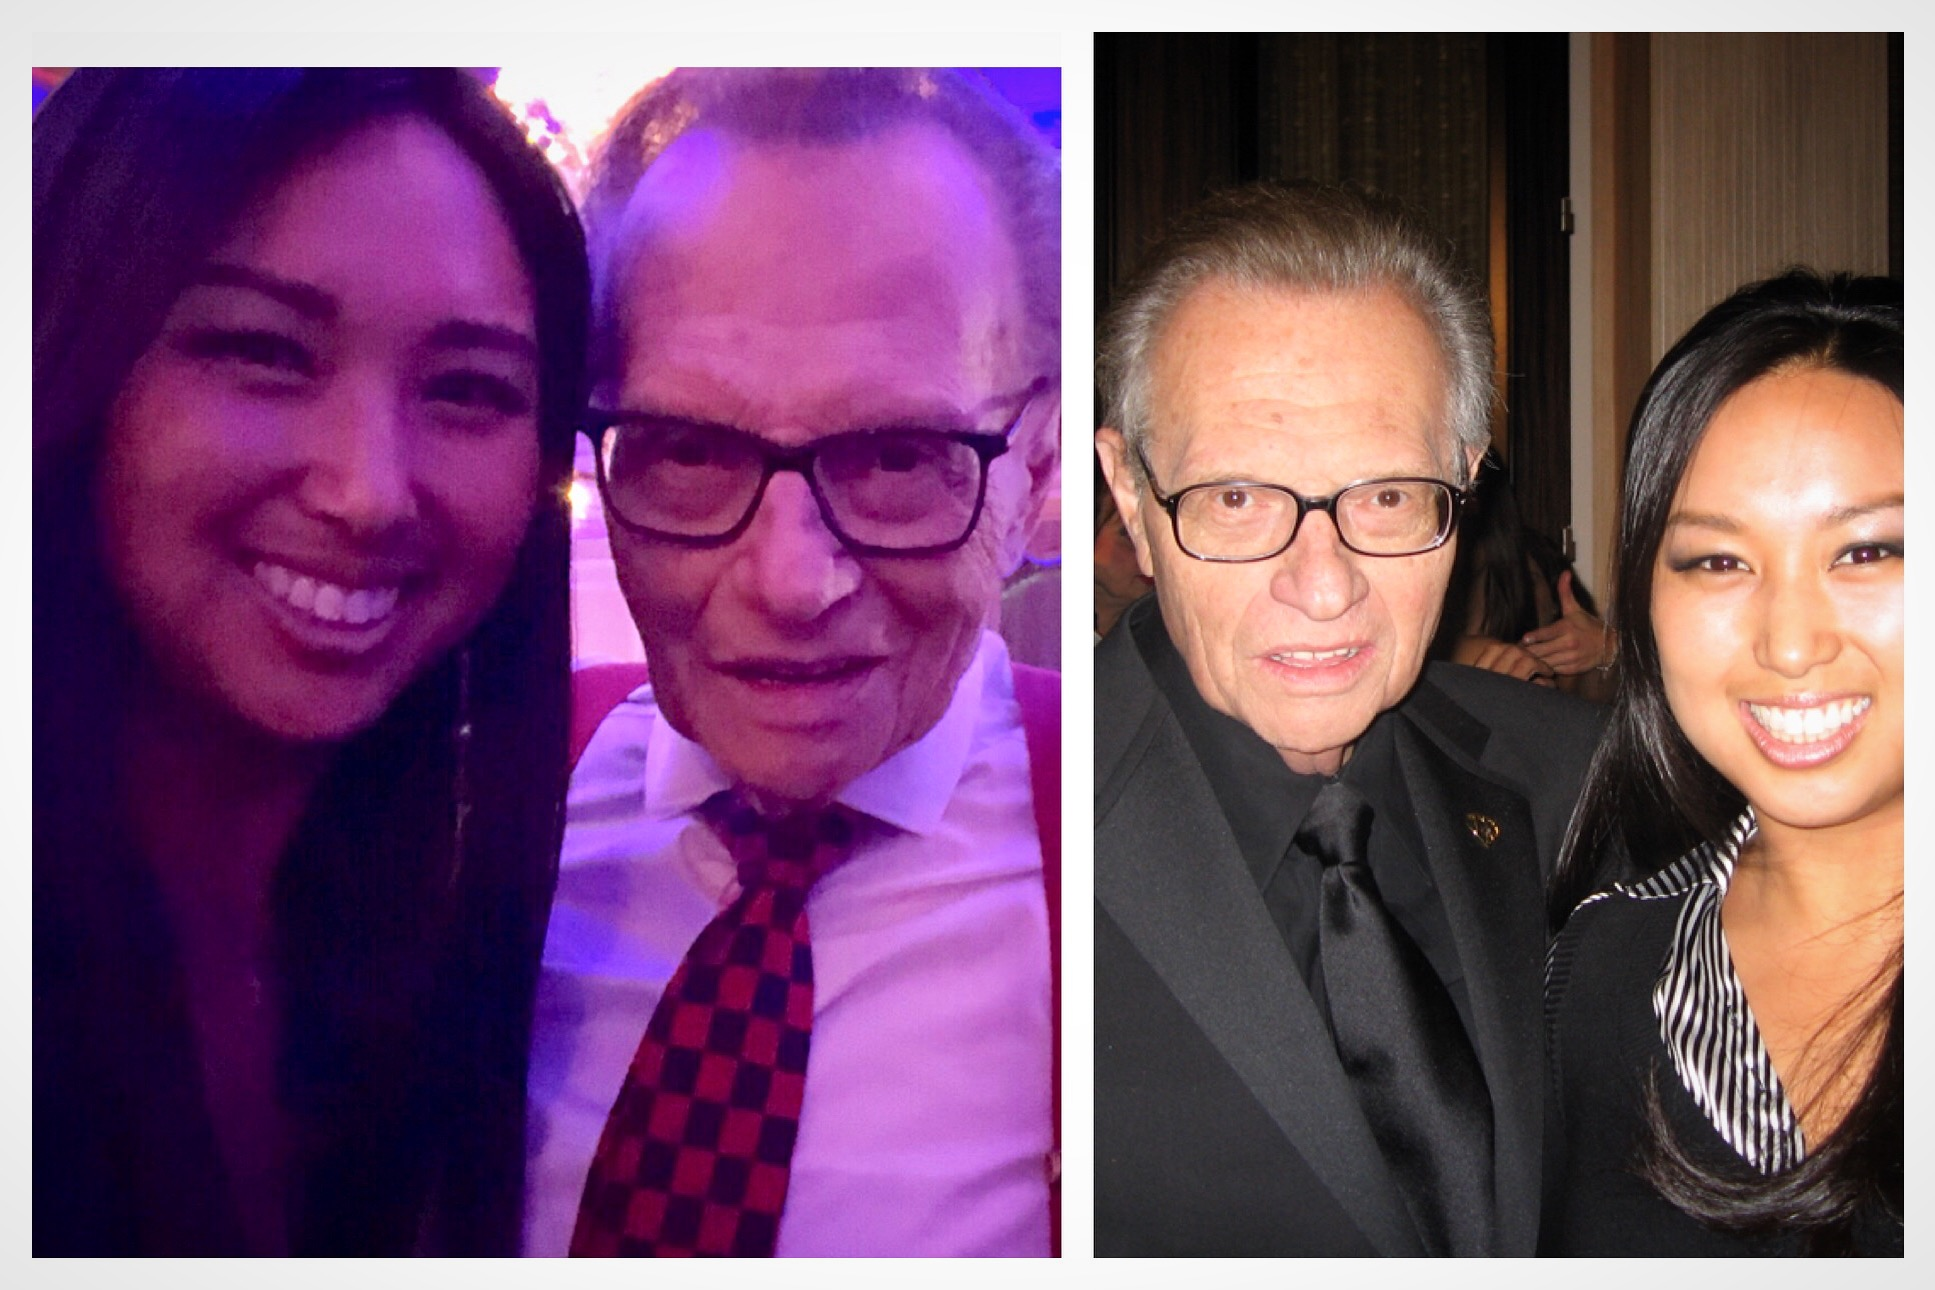 Larry King and I: September 2018 at Ava's Heart Heroes Ball vs. November 2006 at The Larry King Cardiac Foundation Gala